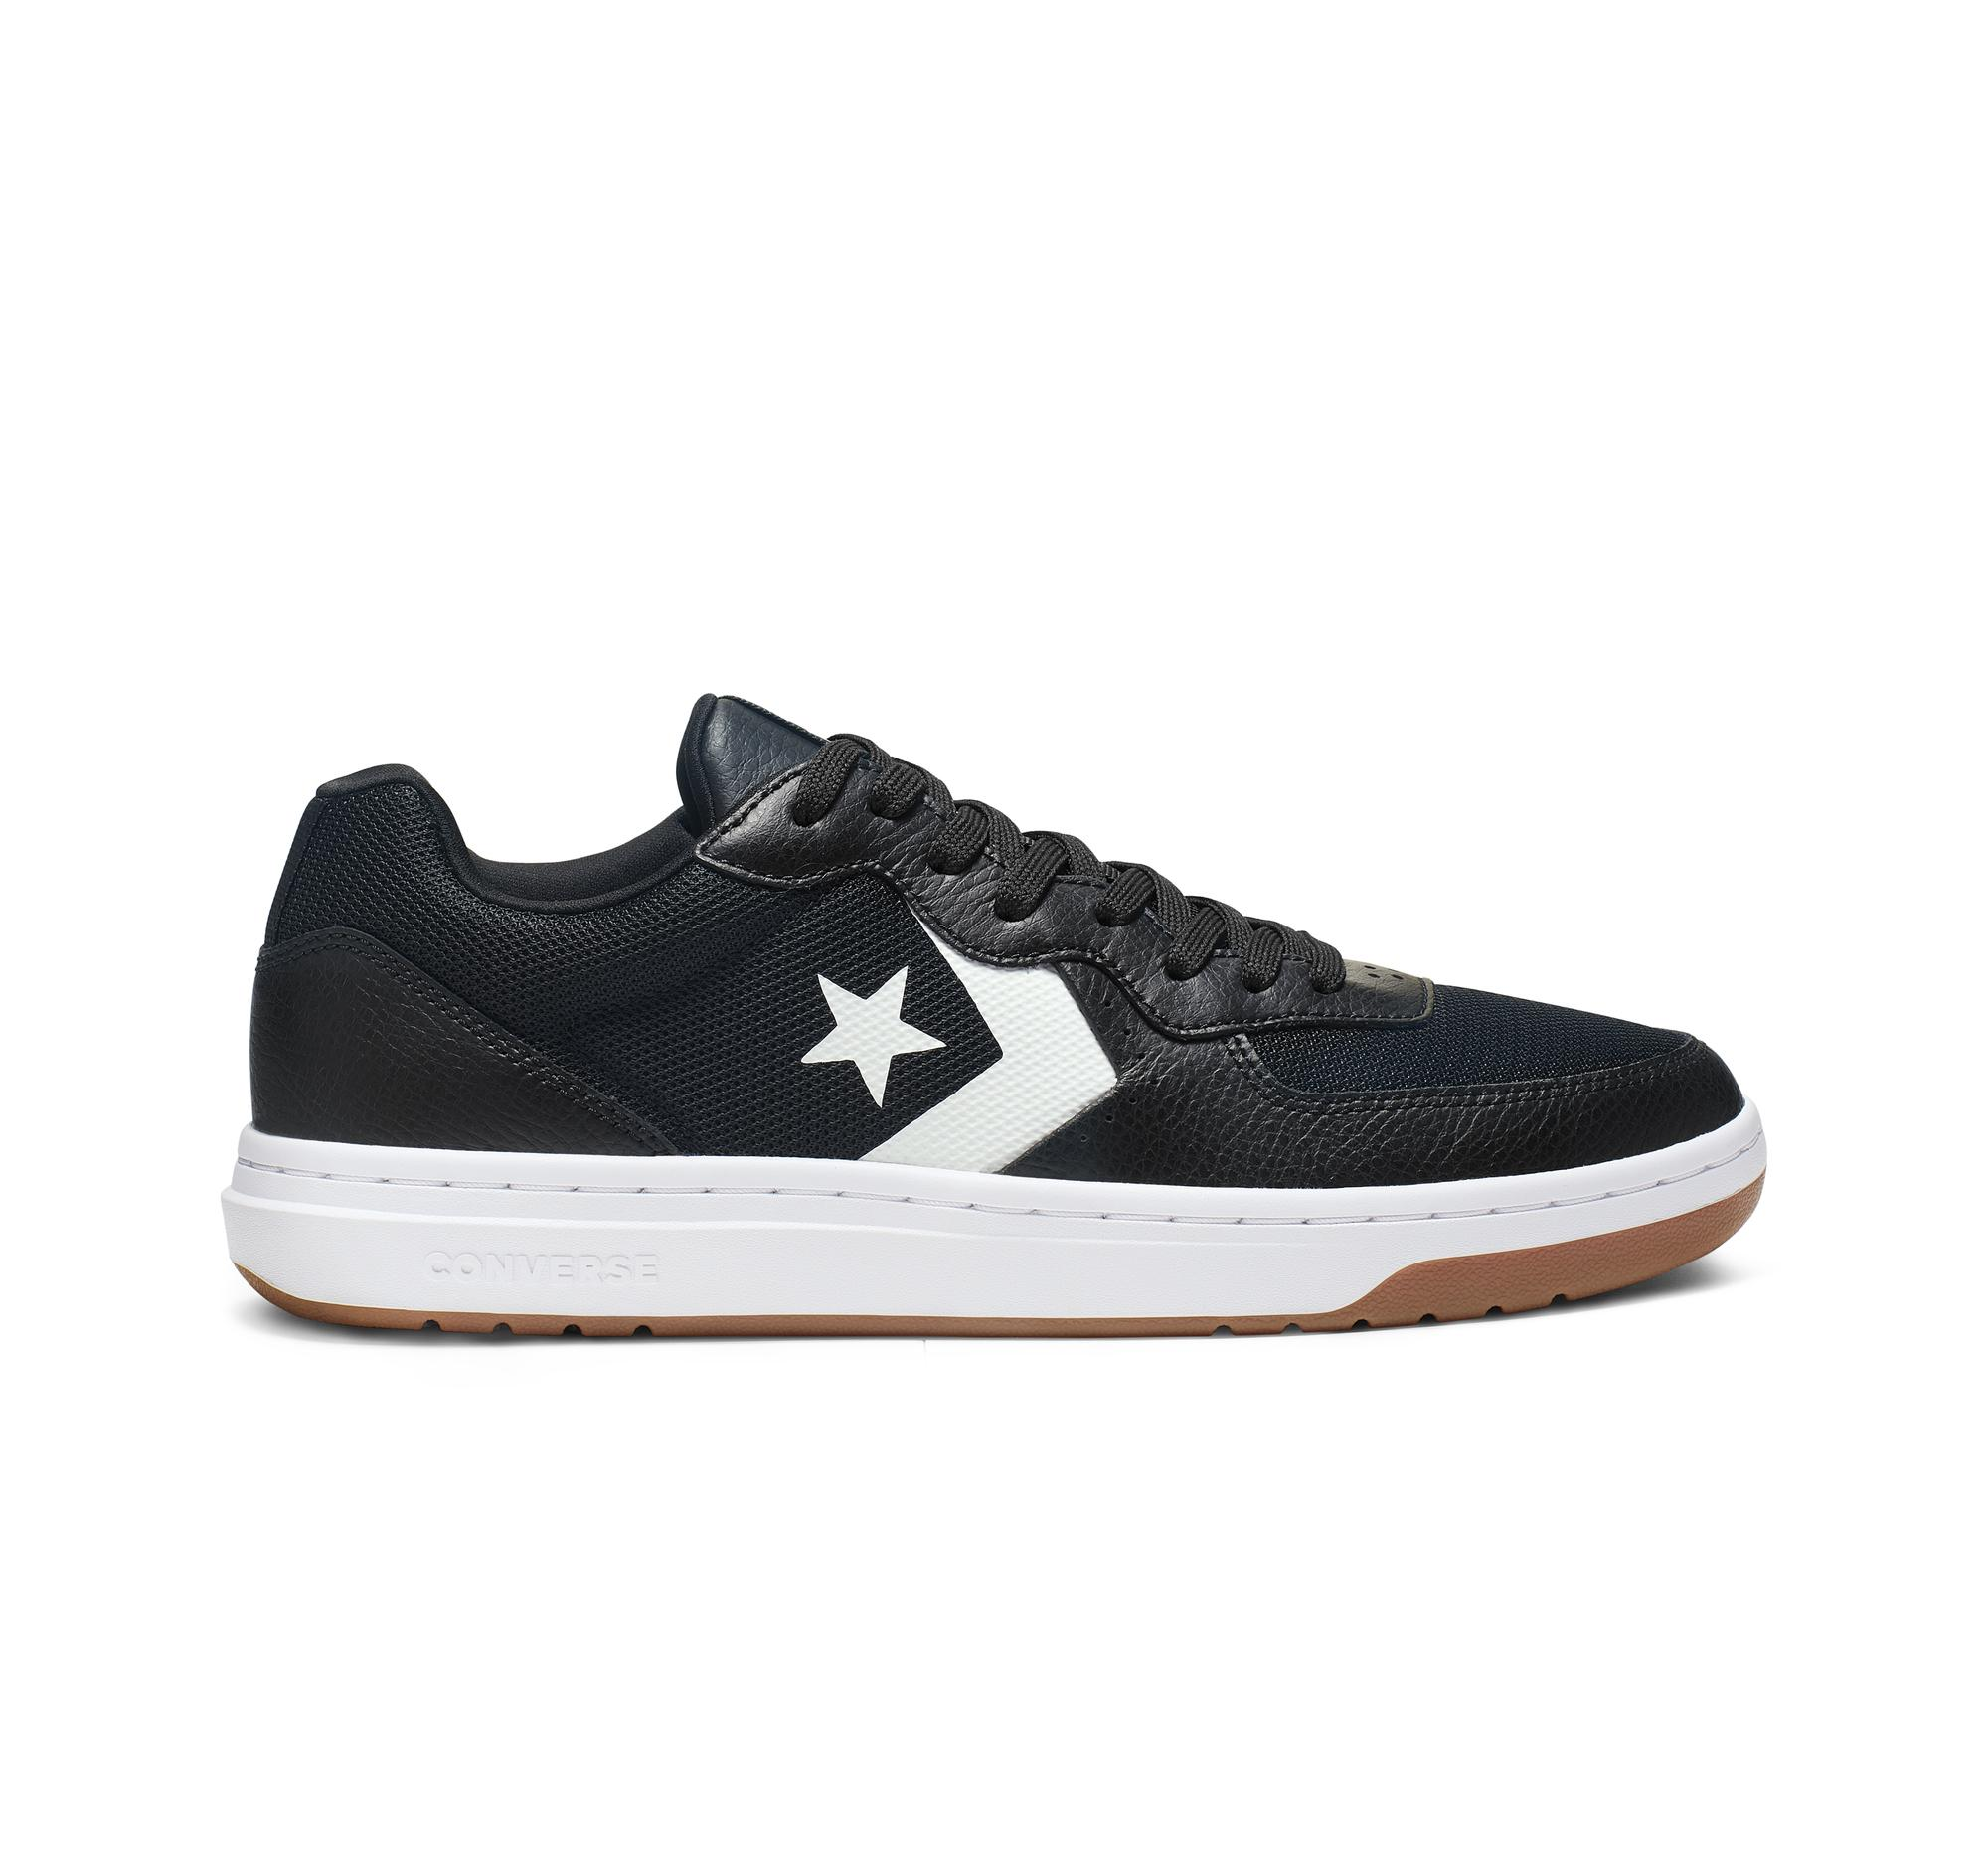 Converse Rival Leather Low Top in Black